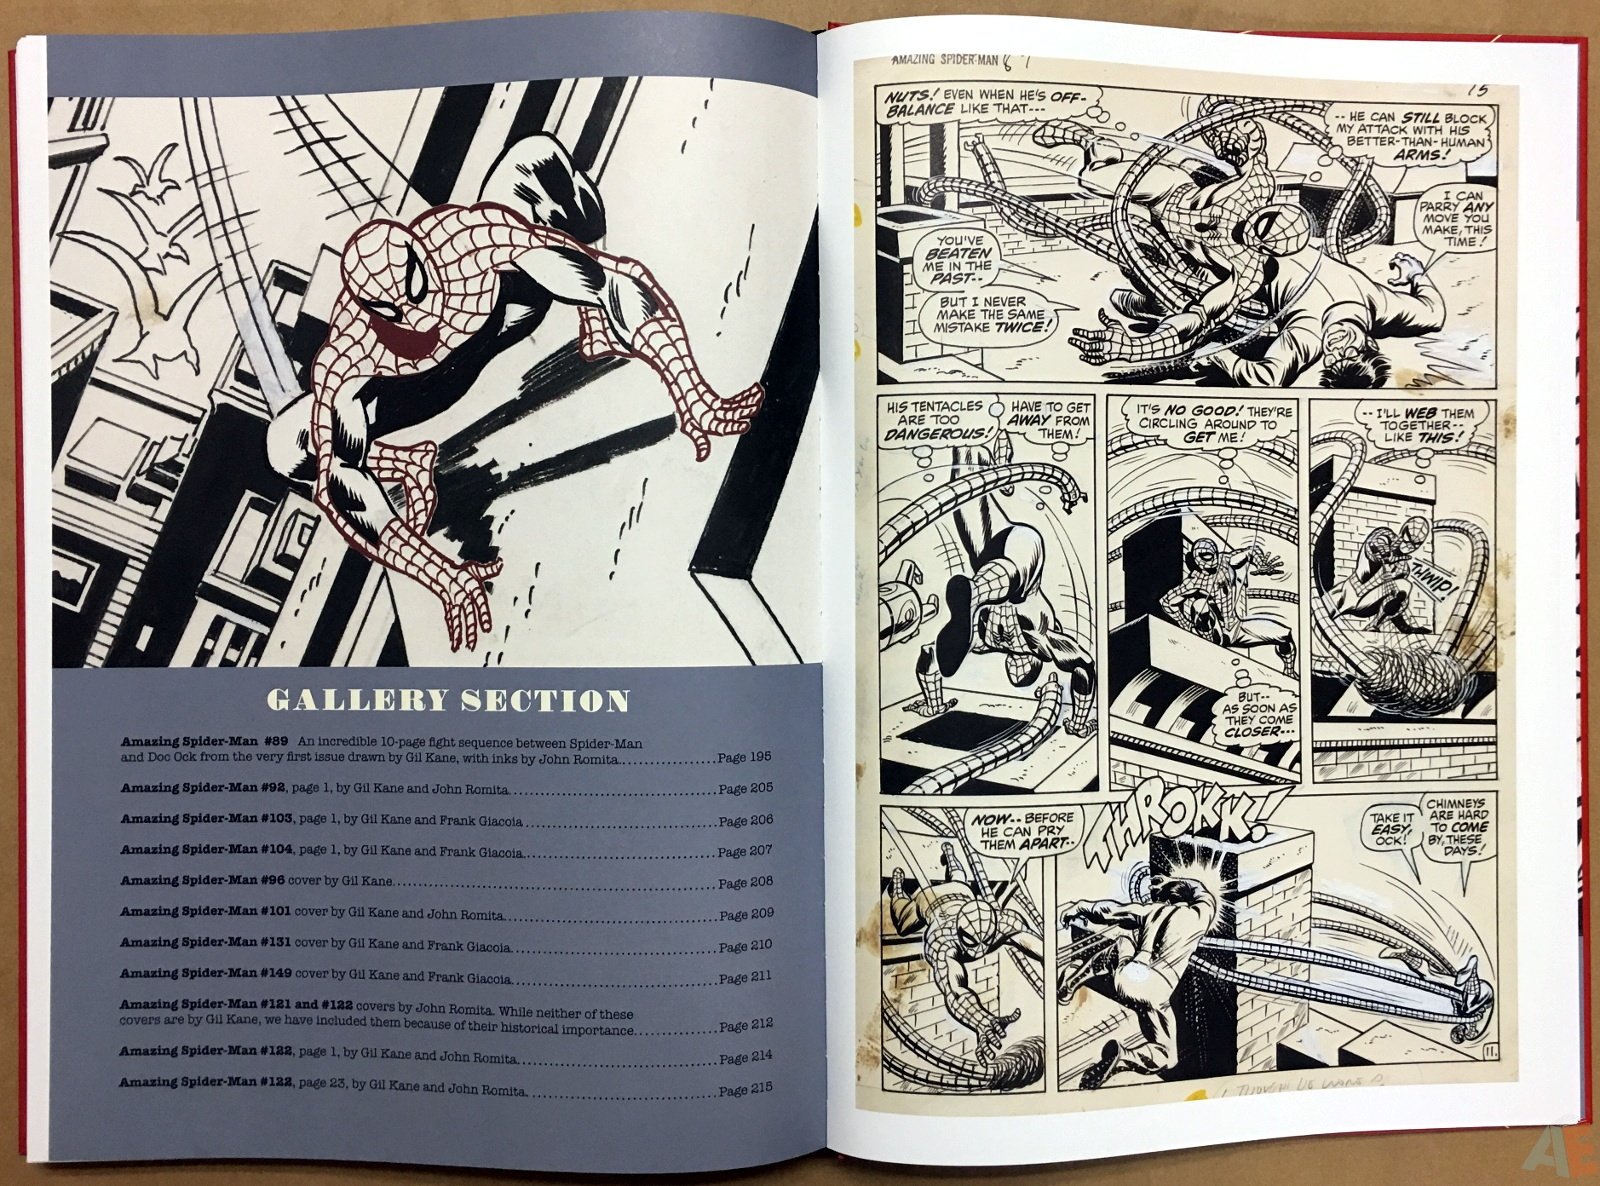 Gil Kane's The Amazing Spider-Man Artist's Edition 46